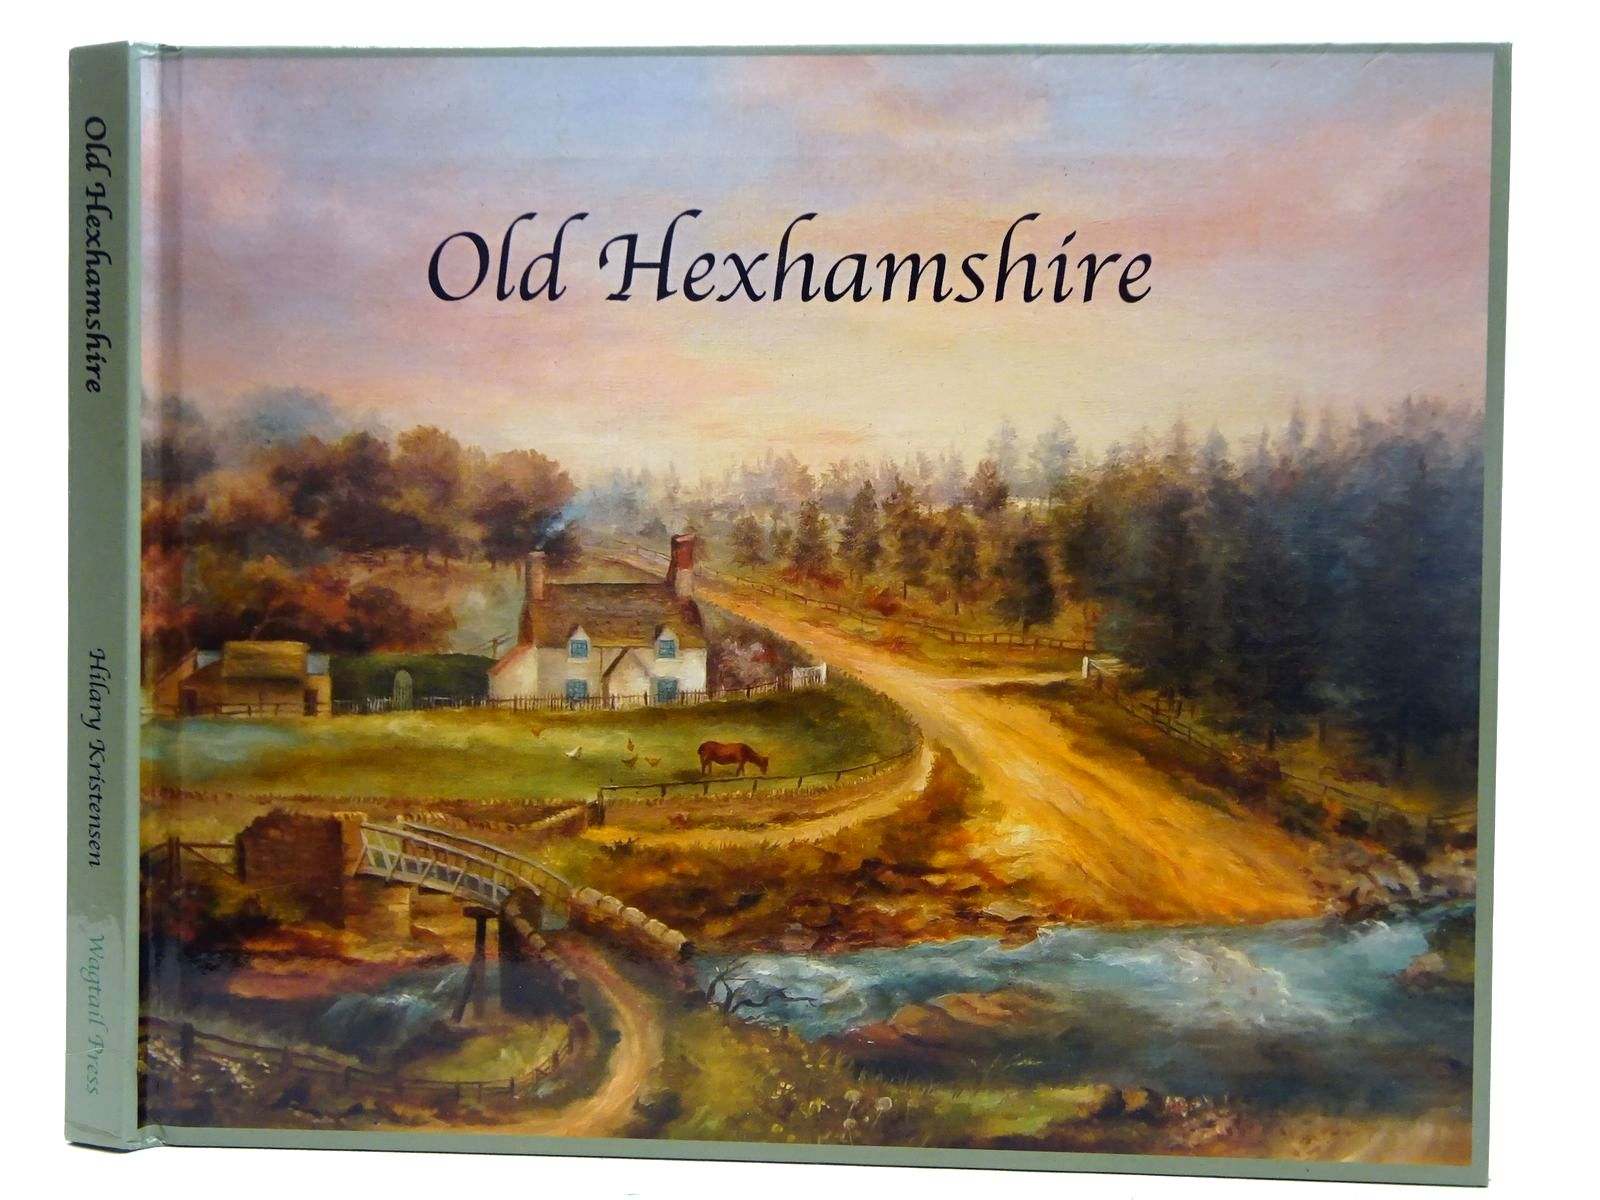 Photo of OLD HEXHAMSHIRE written by Kristensen, Hilary published by Wagtail Press (STOCK CODE: 2126540)  for sale by Stella & Rose's Books